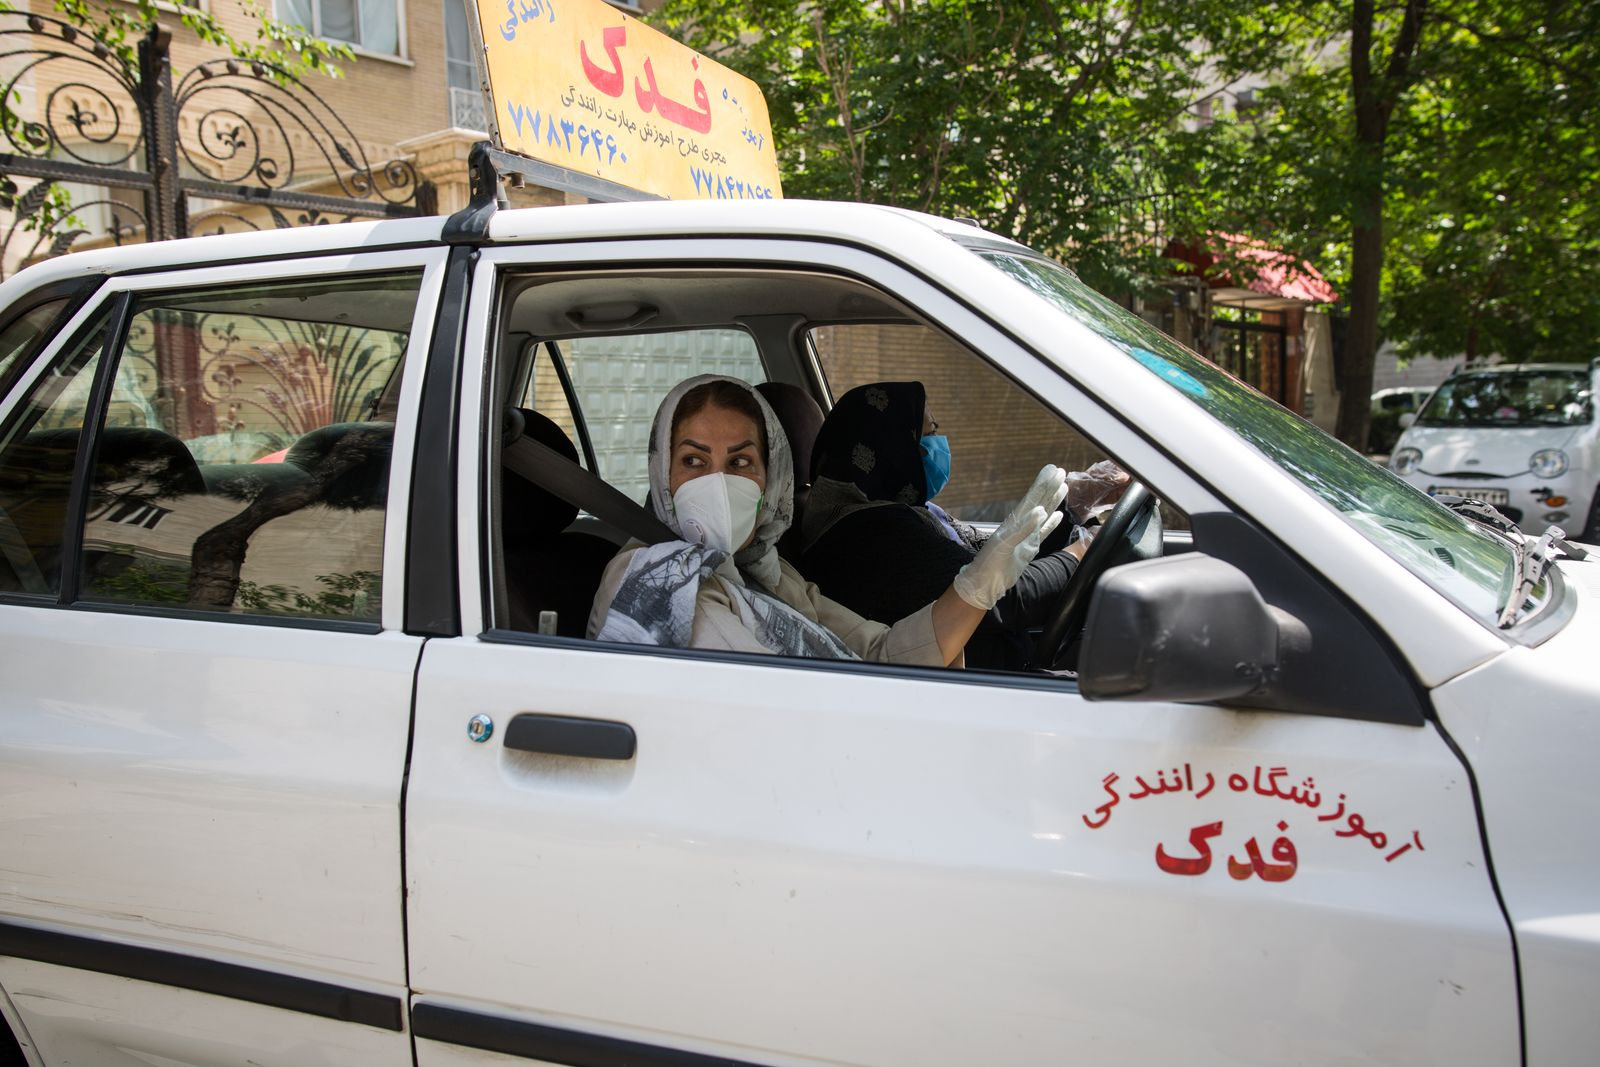 Maryam, The driving instructor